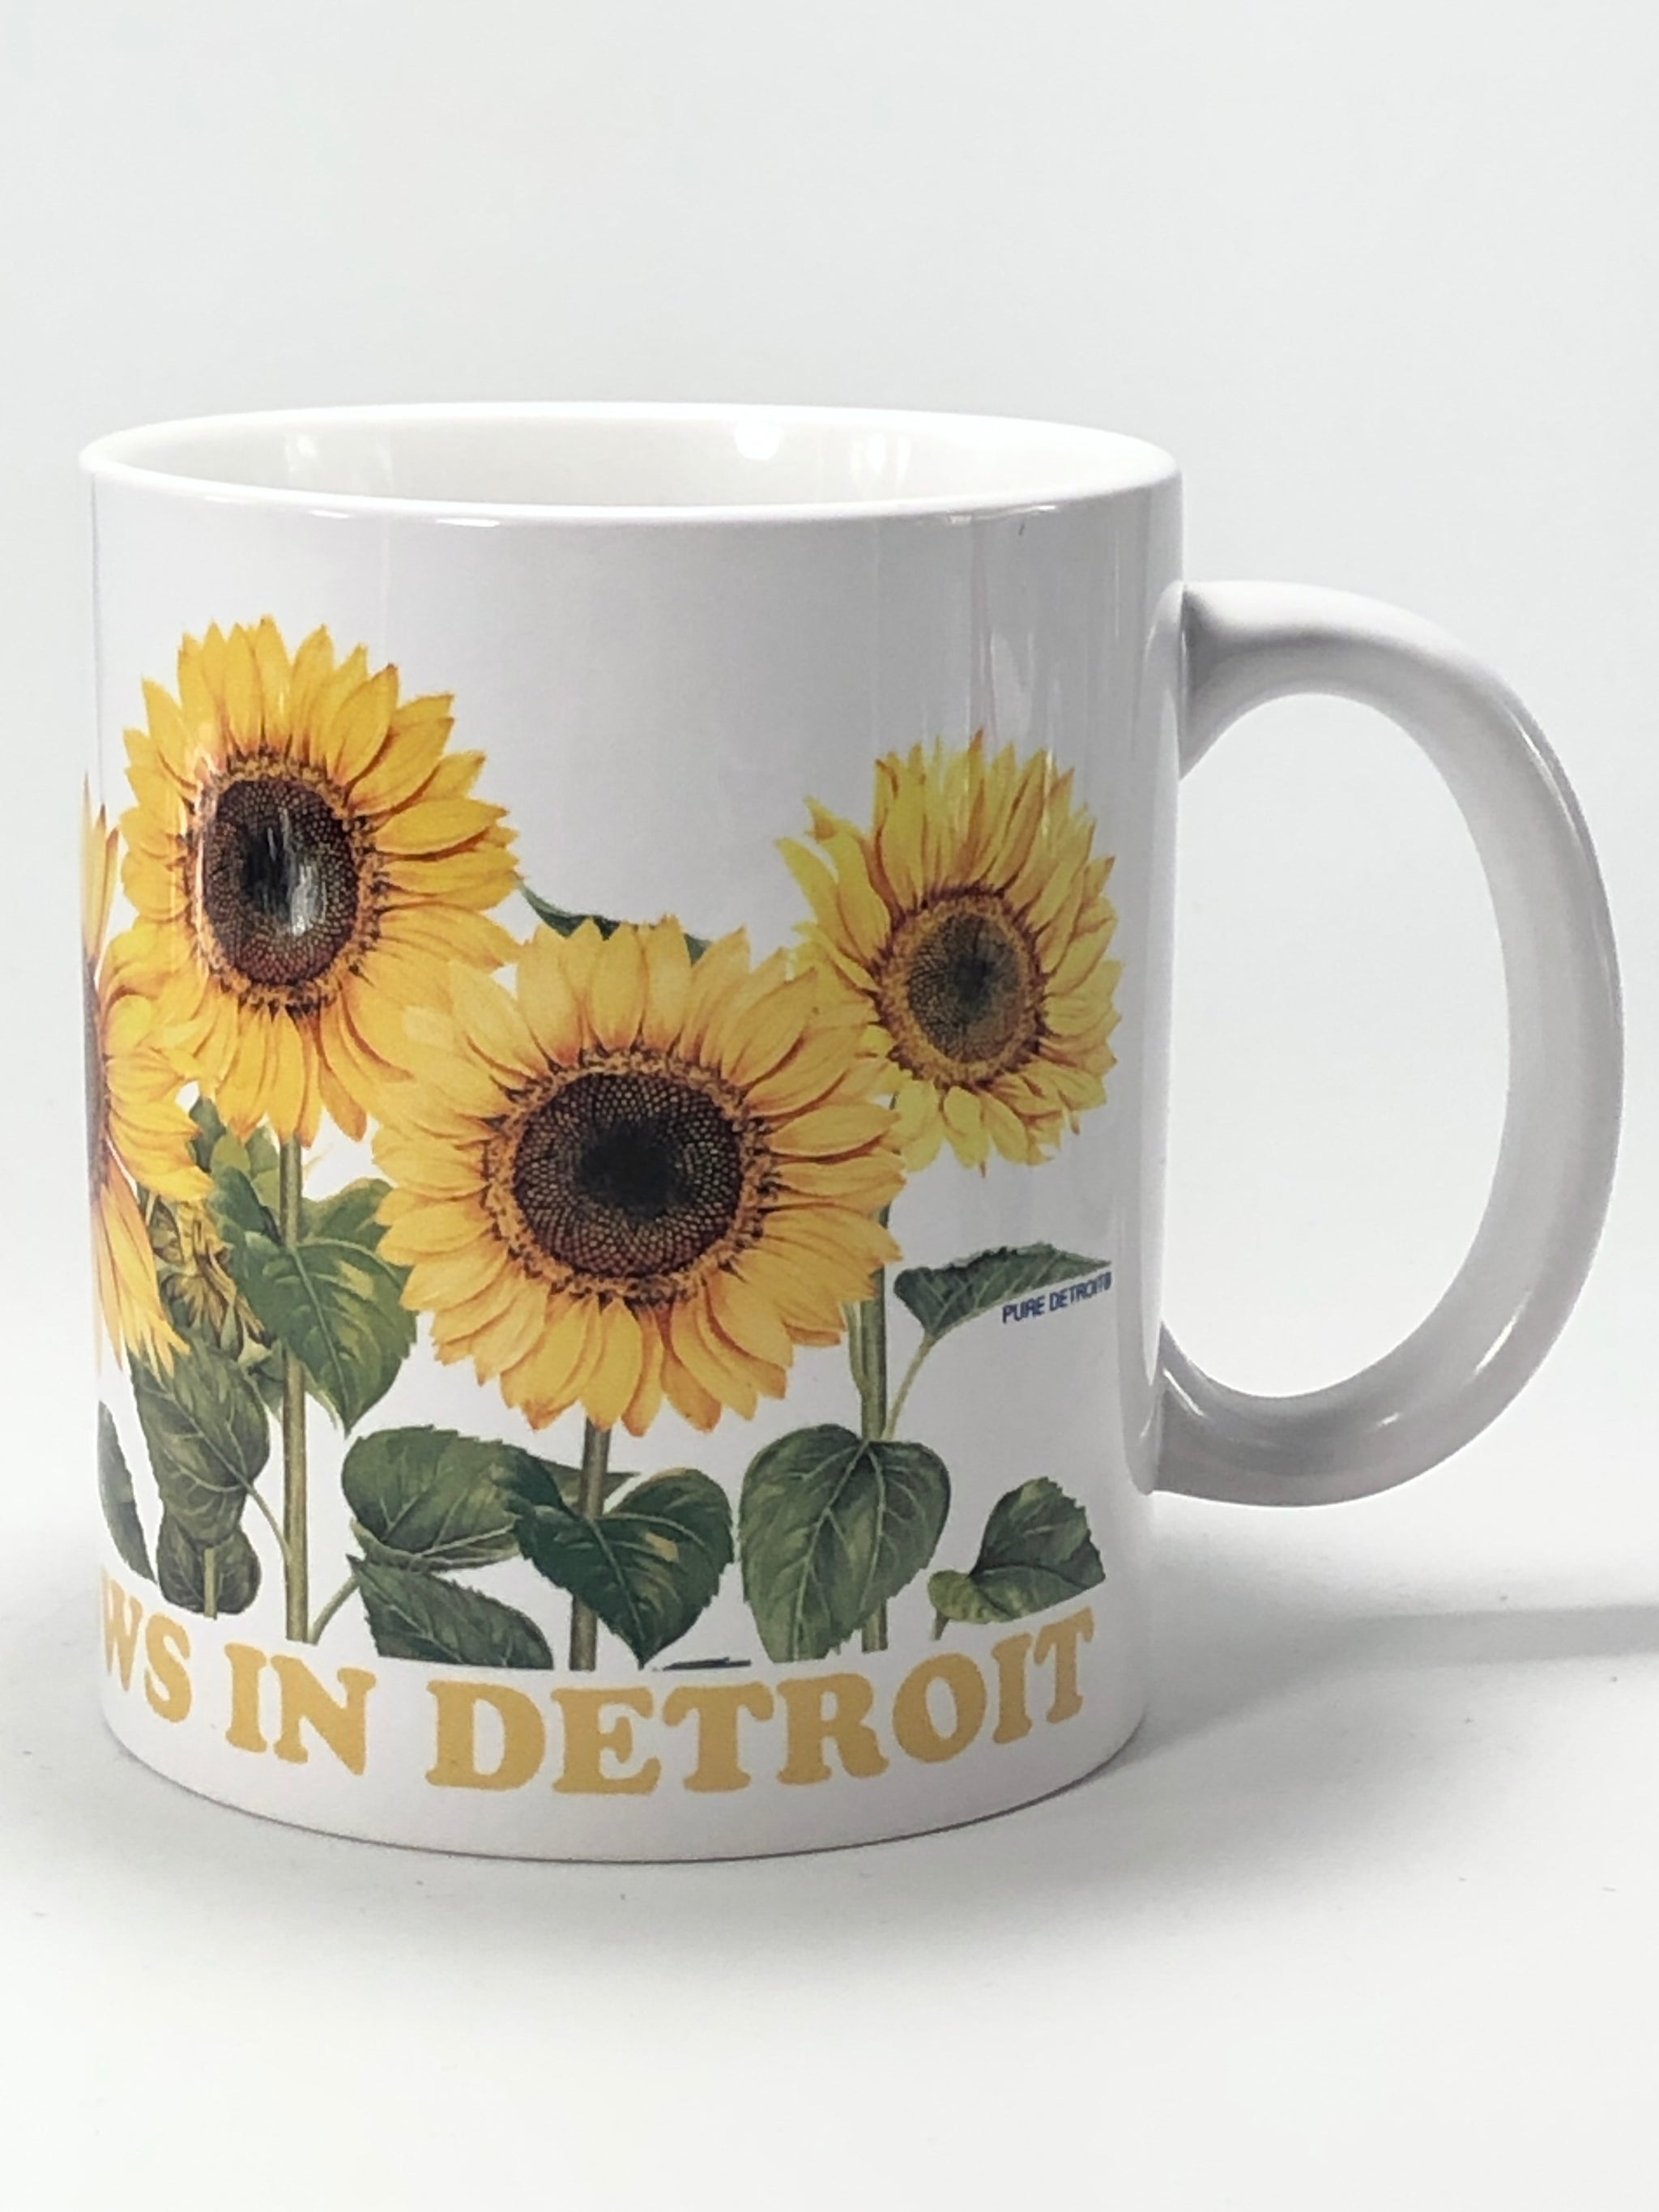 Goodness Grows in Detroit 11 oz Coffee Mug - Pure Detroit